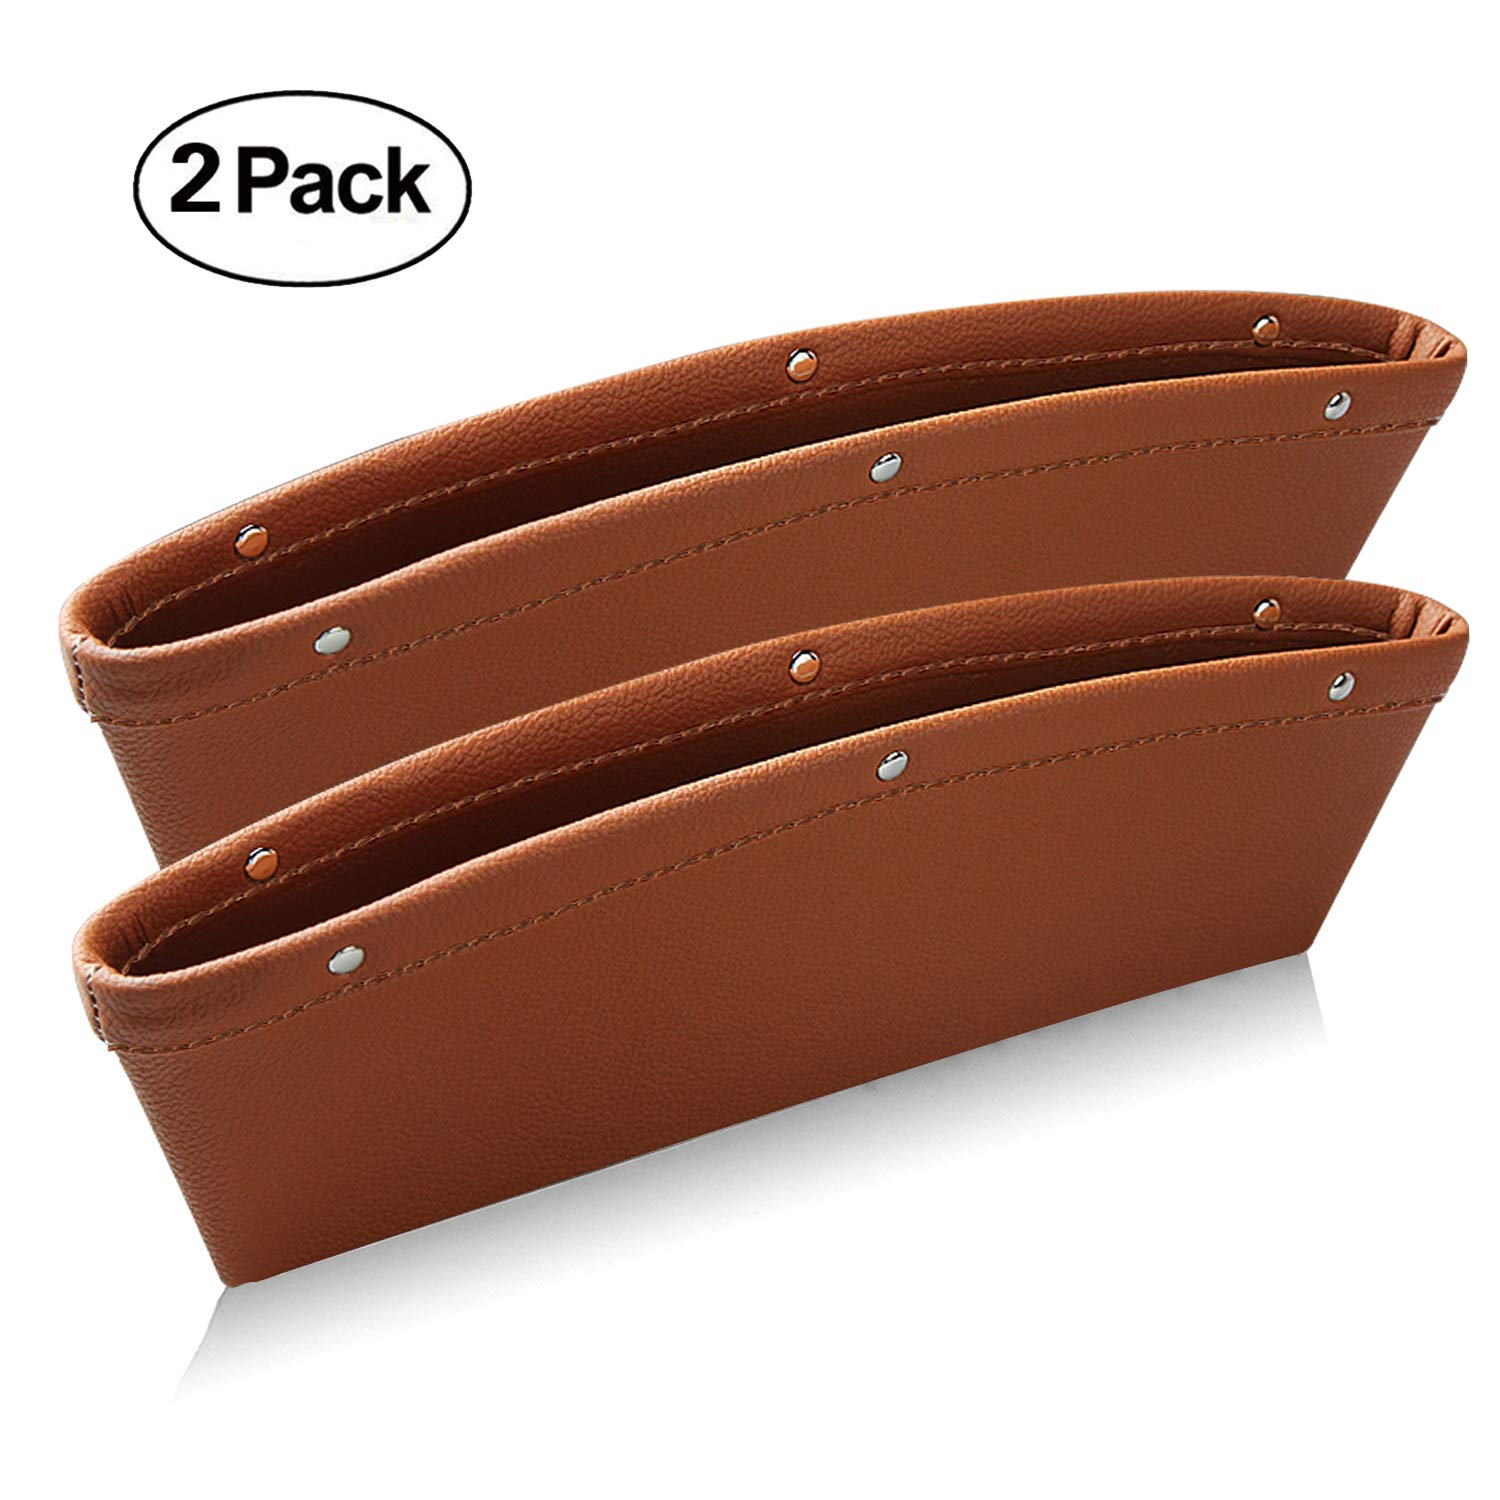 Leather Car Seat Gap Filler, Ampper Car Seat Side Console Slit Caddy Catcher Storage Box Pad Pocket Premium Quality PU Leather - (0.79 - 1.6 in Gap Fit, Black, 2 Pack) DS01